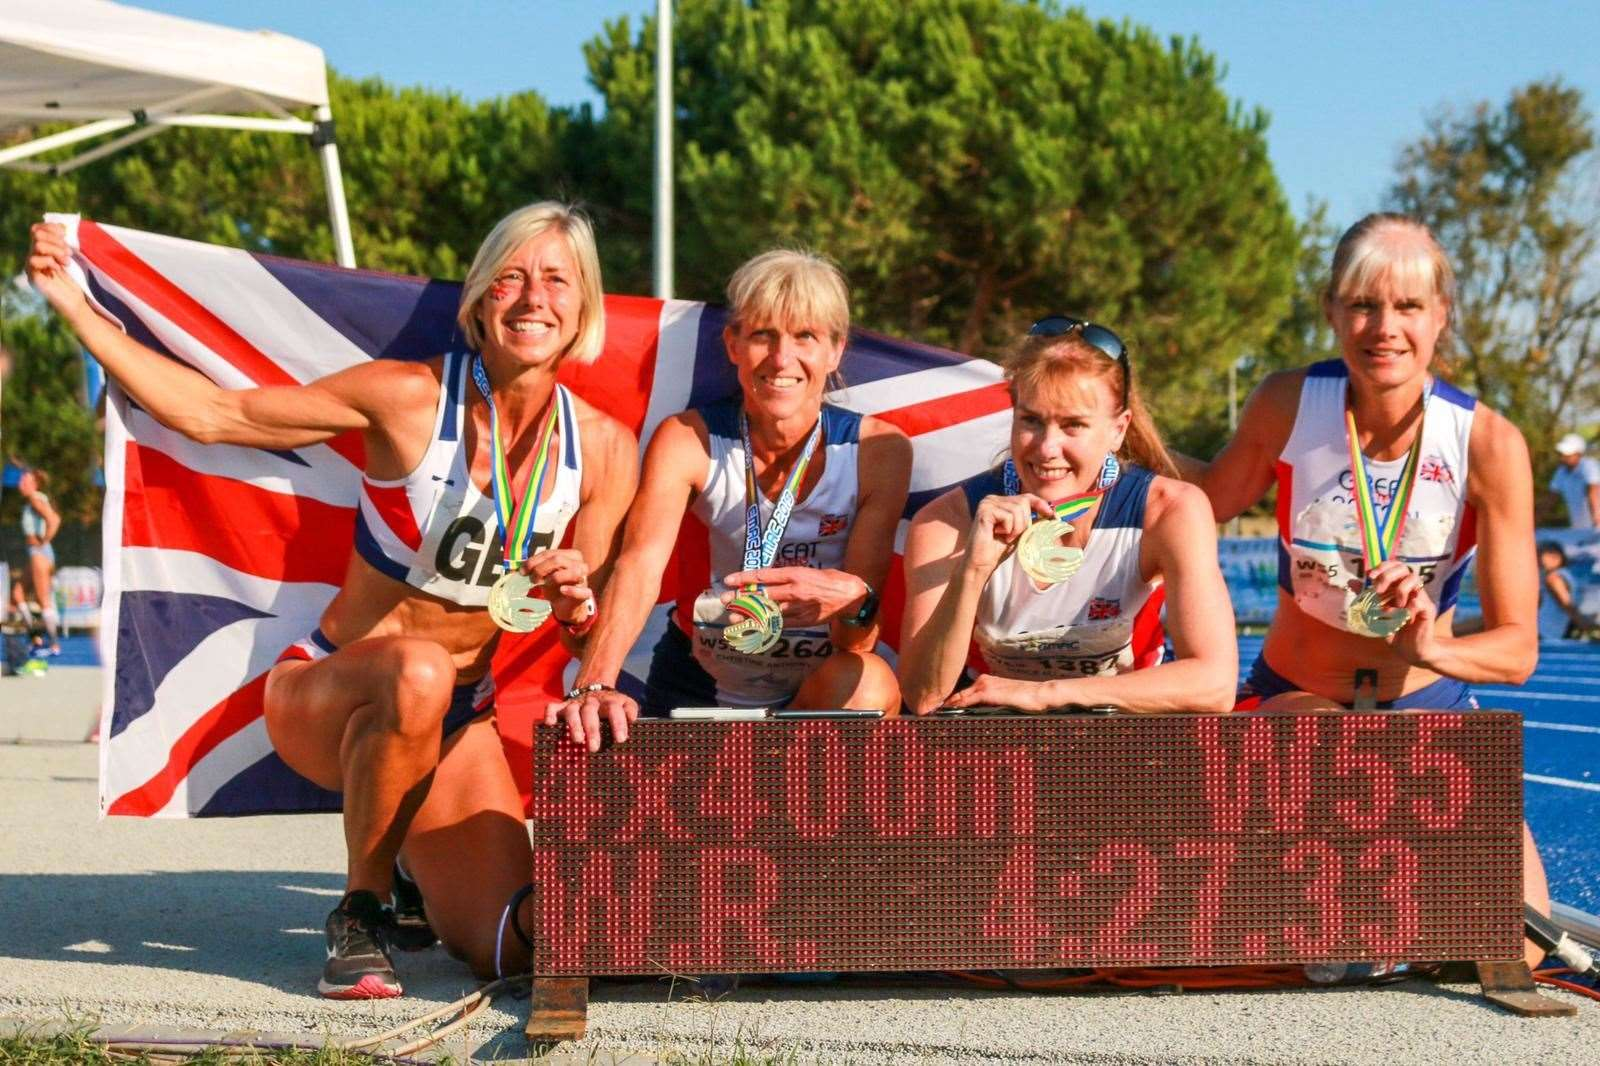 Christine Anthony (second left) with her W55 4x400m record breaking Team GB team-mates. The 4 woman team broke a 9 year record with the run at the European Masters Track and Field Championships Venice 2019. Picture: Contributed (18214553)